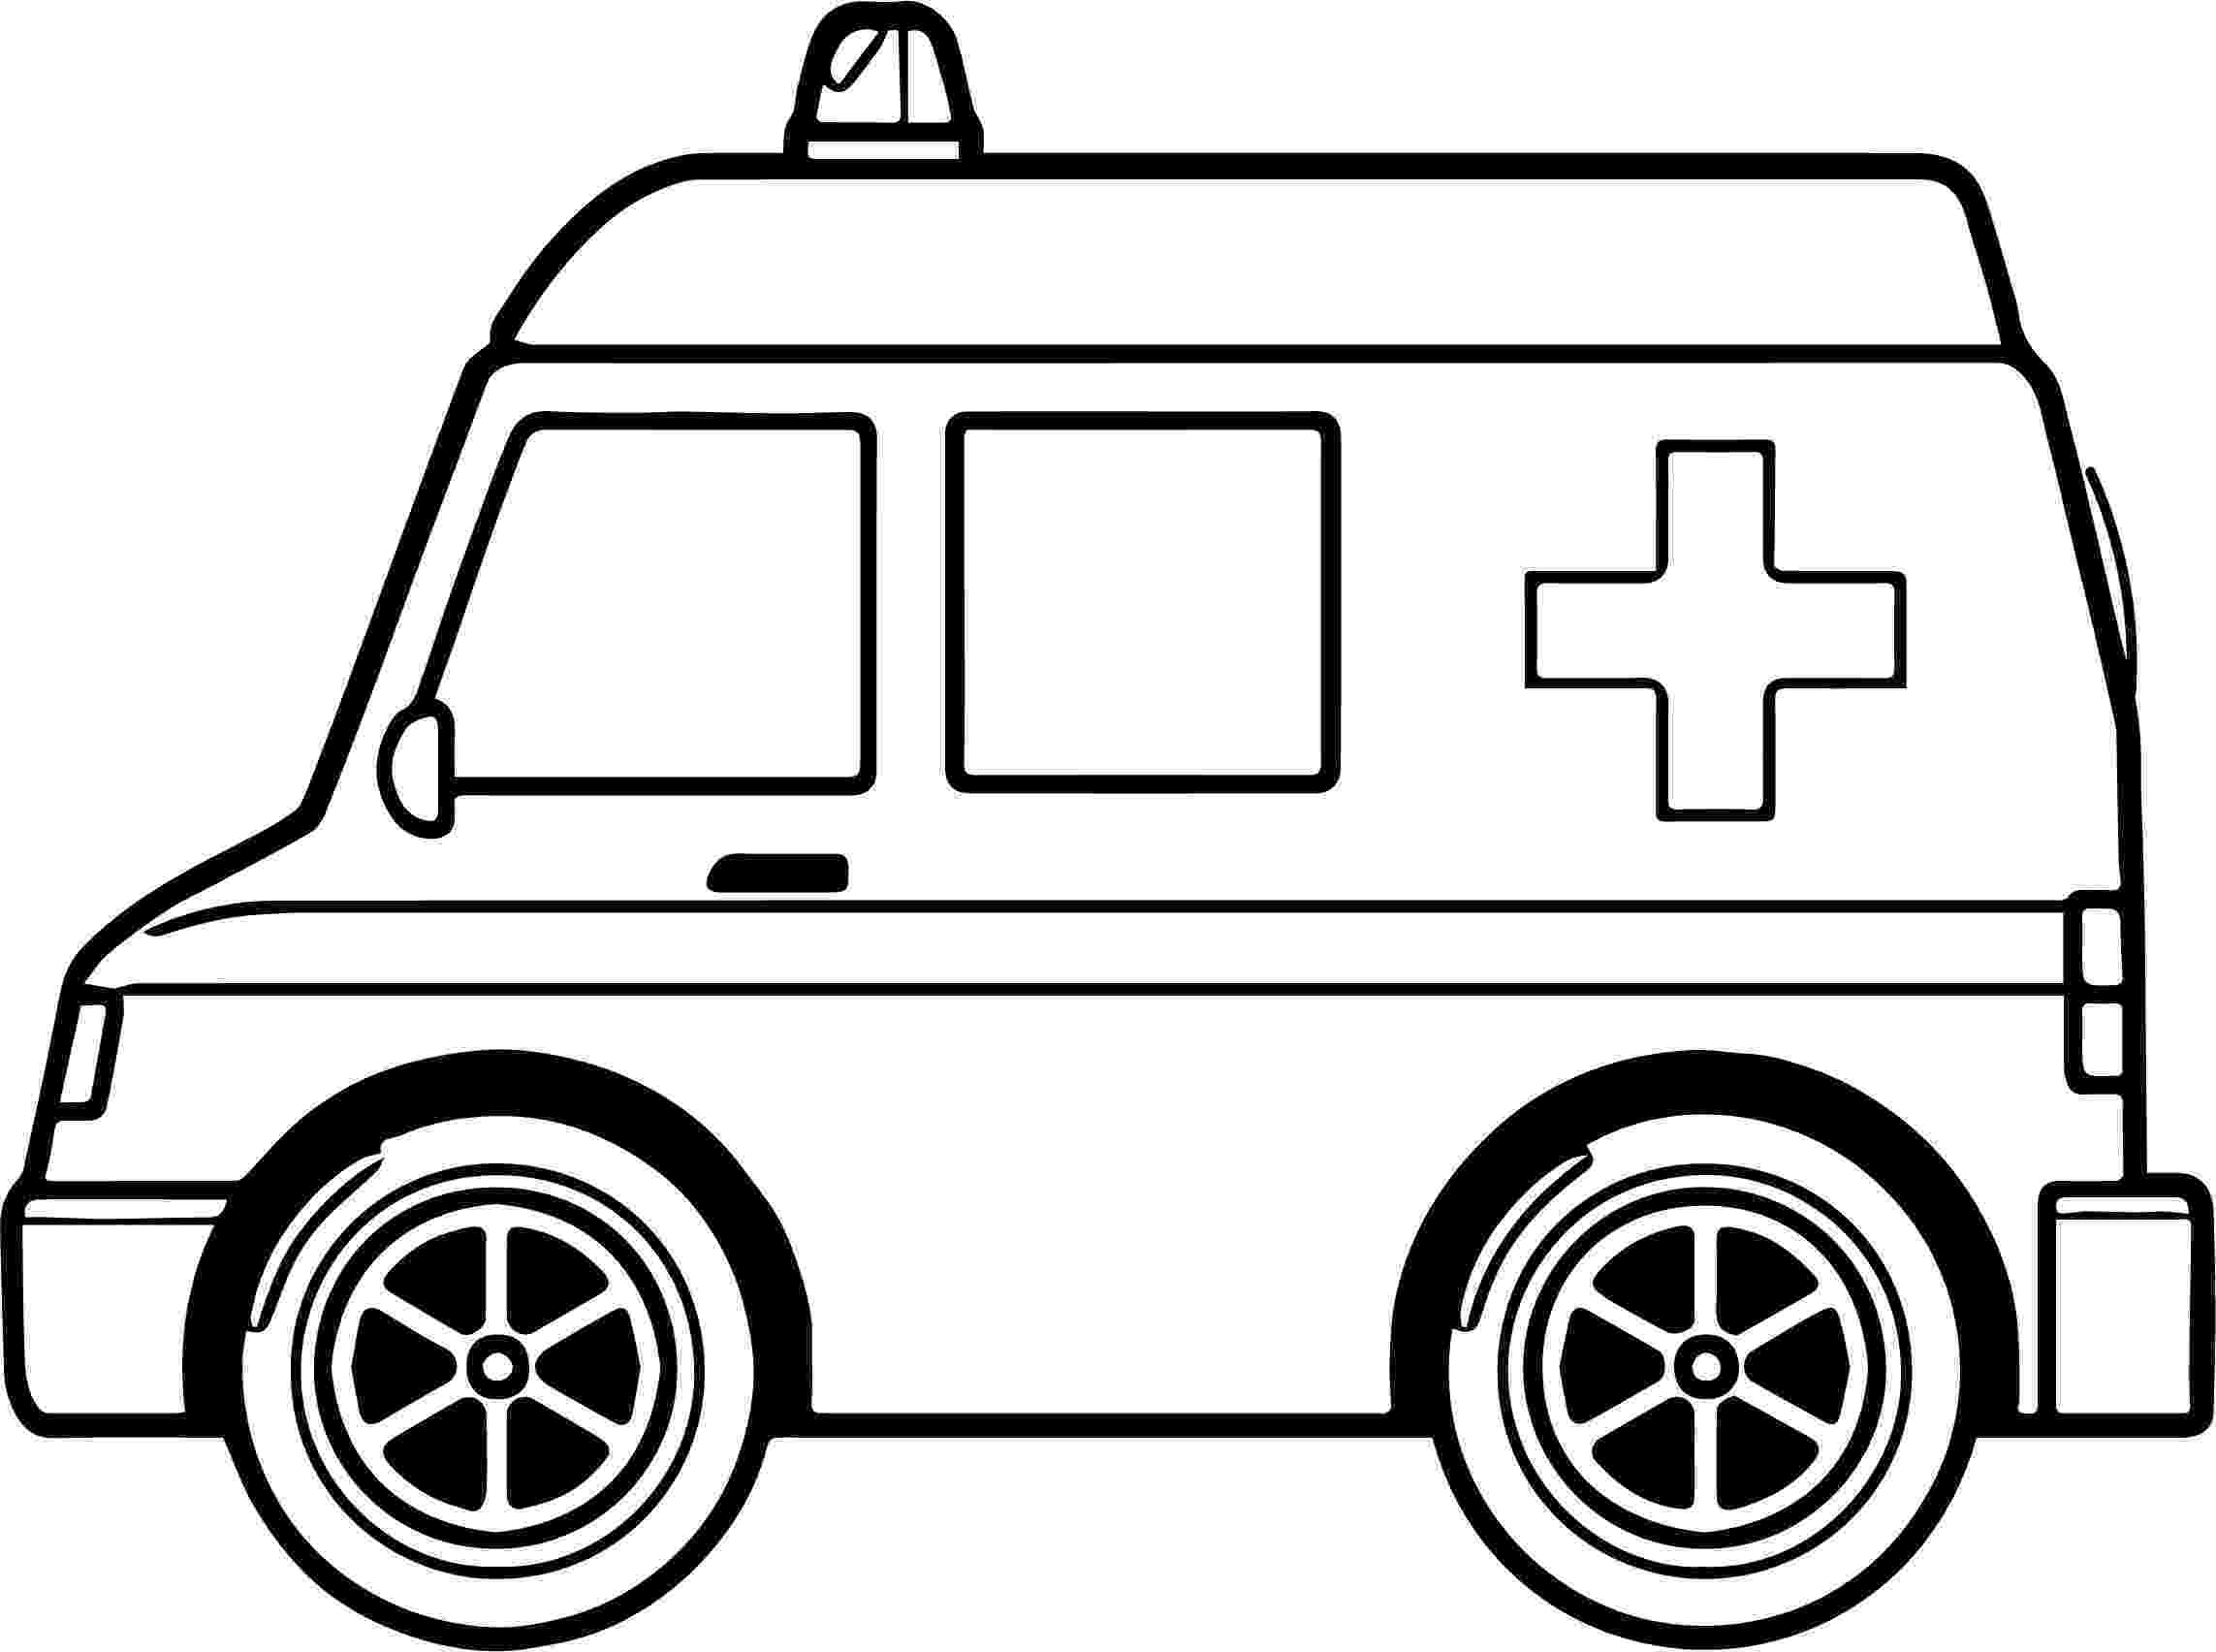 ambulance colouring pages emergency coloring pages at getdrawings free download colouring pages ambulance